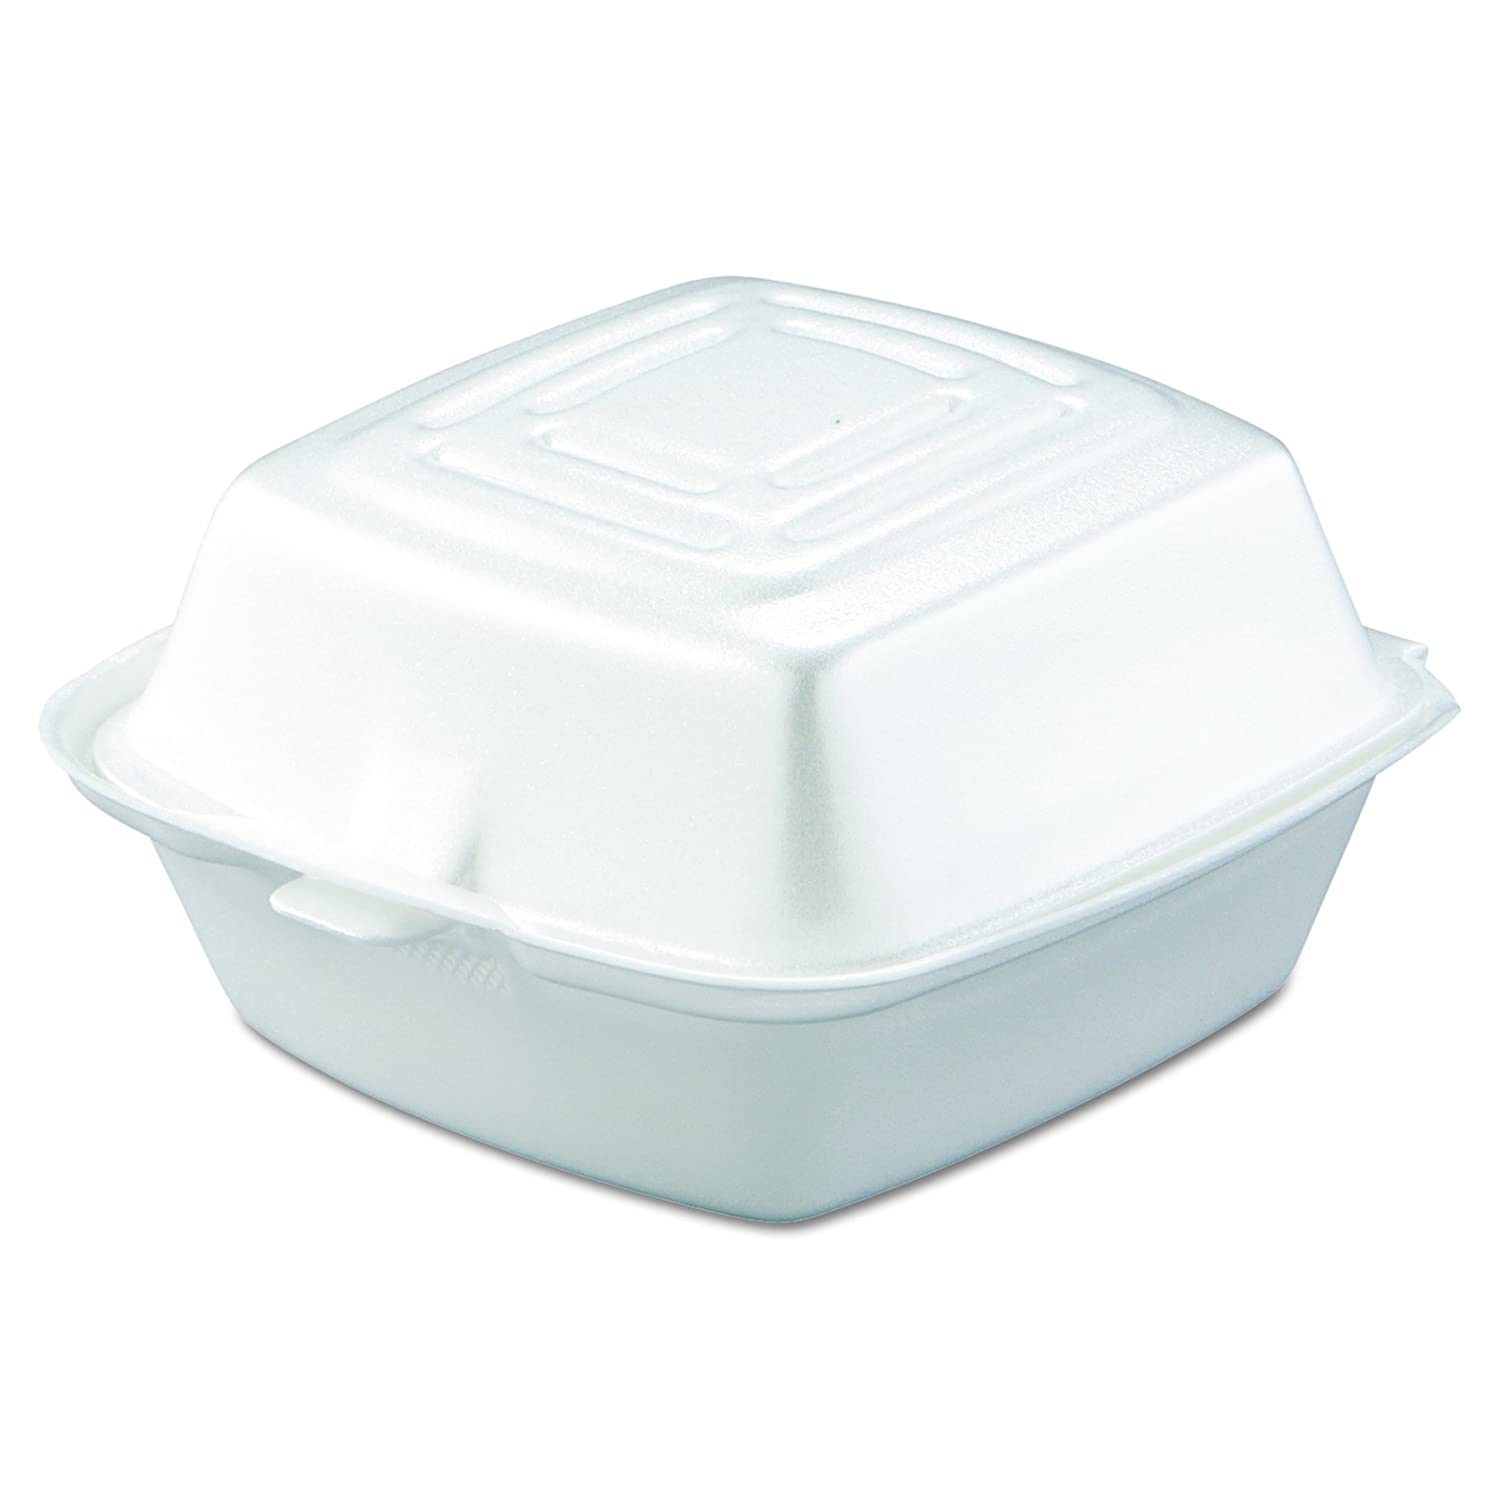 DART 50HT1 5 in Med Sandwich Foam Hinged Container (Case of 500)